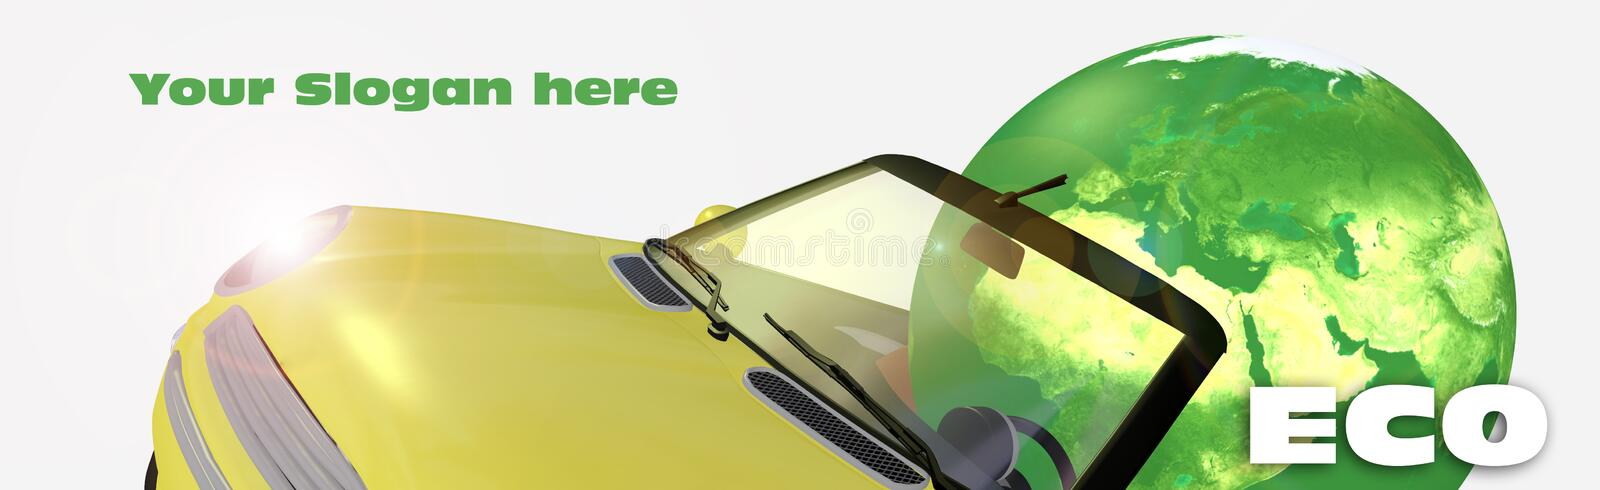 3d Eco Car Royalty Free Stock Photography